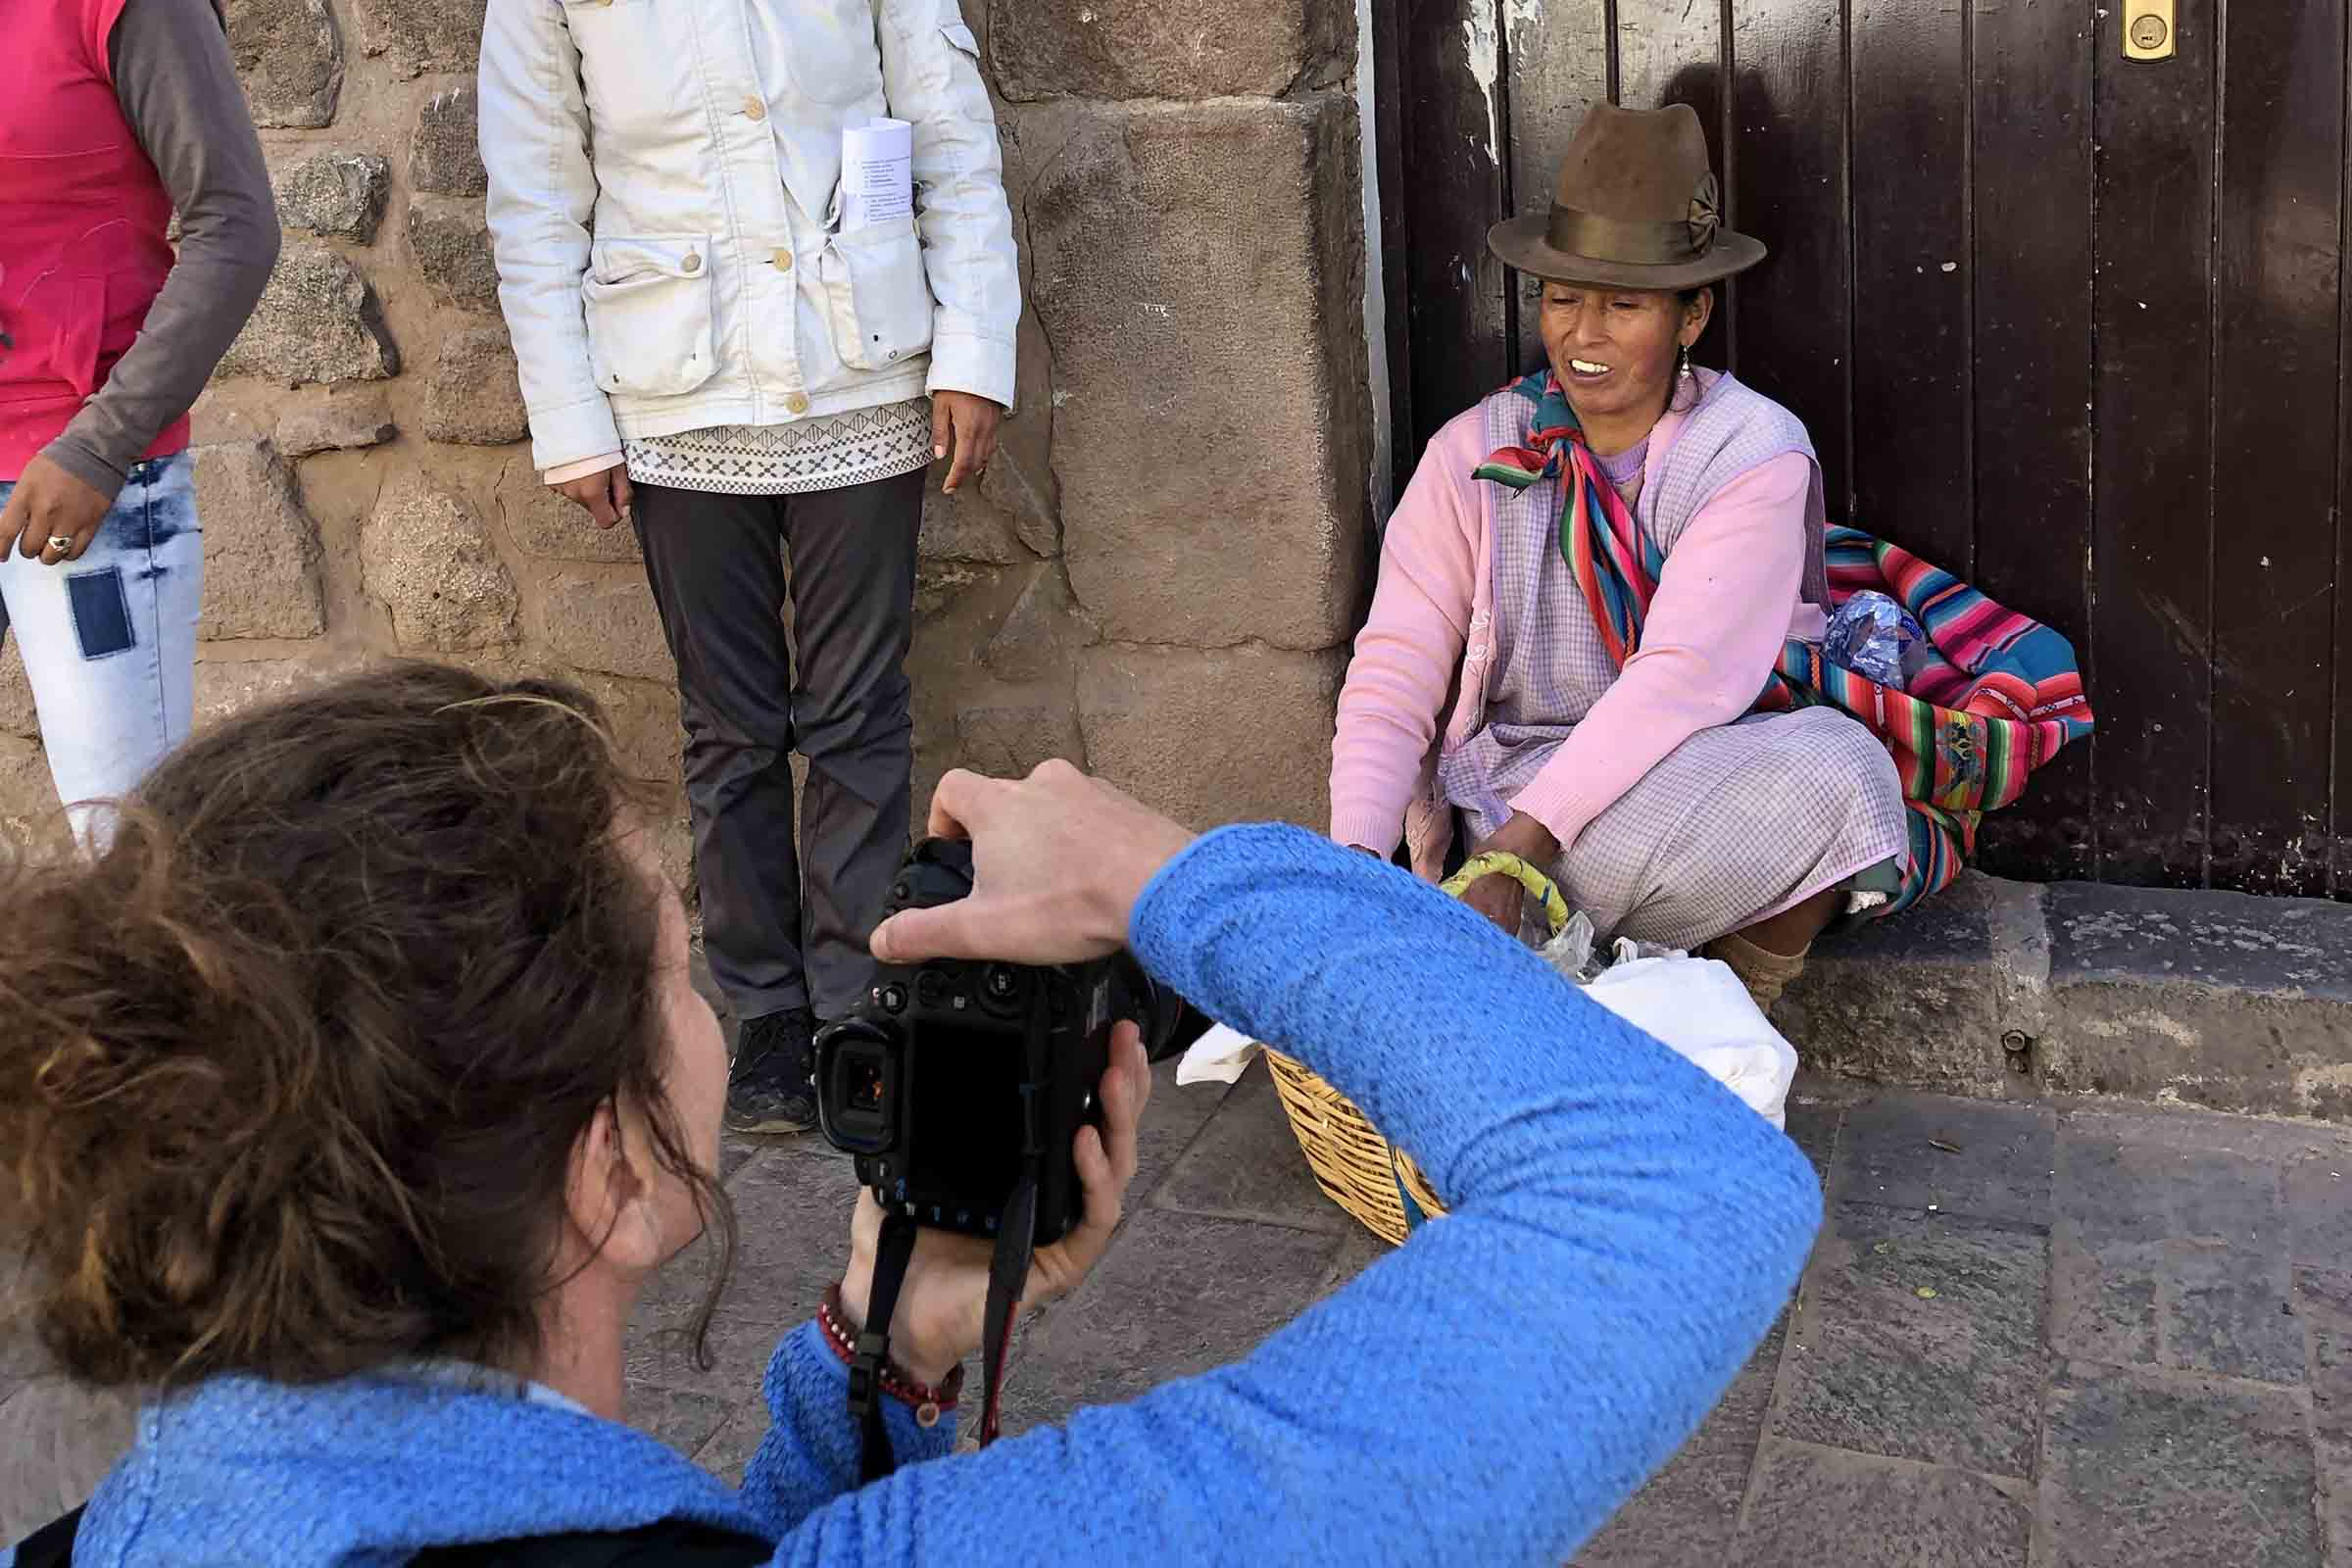 jimmy-nelson-foundation-peru-quechua-behind-the-scenes-gallery-31